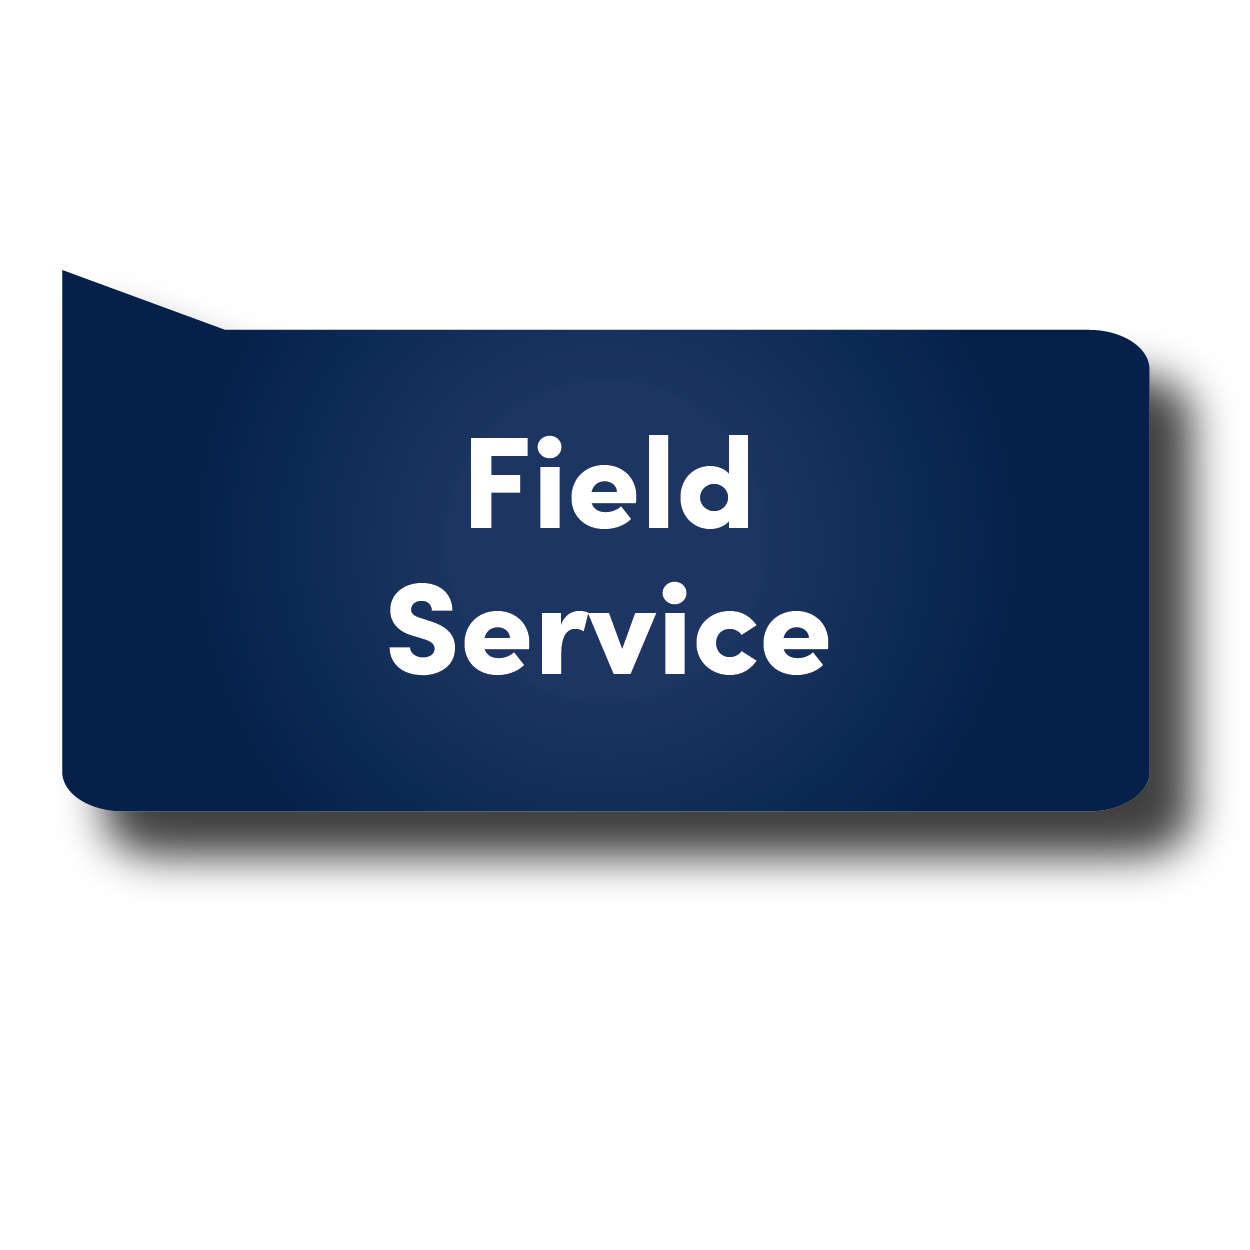 Field Service BUBBLE-01.png